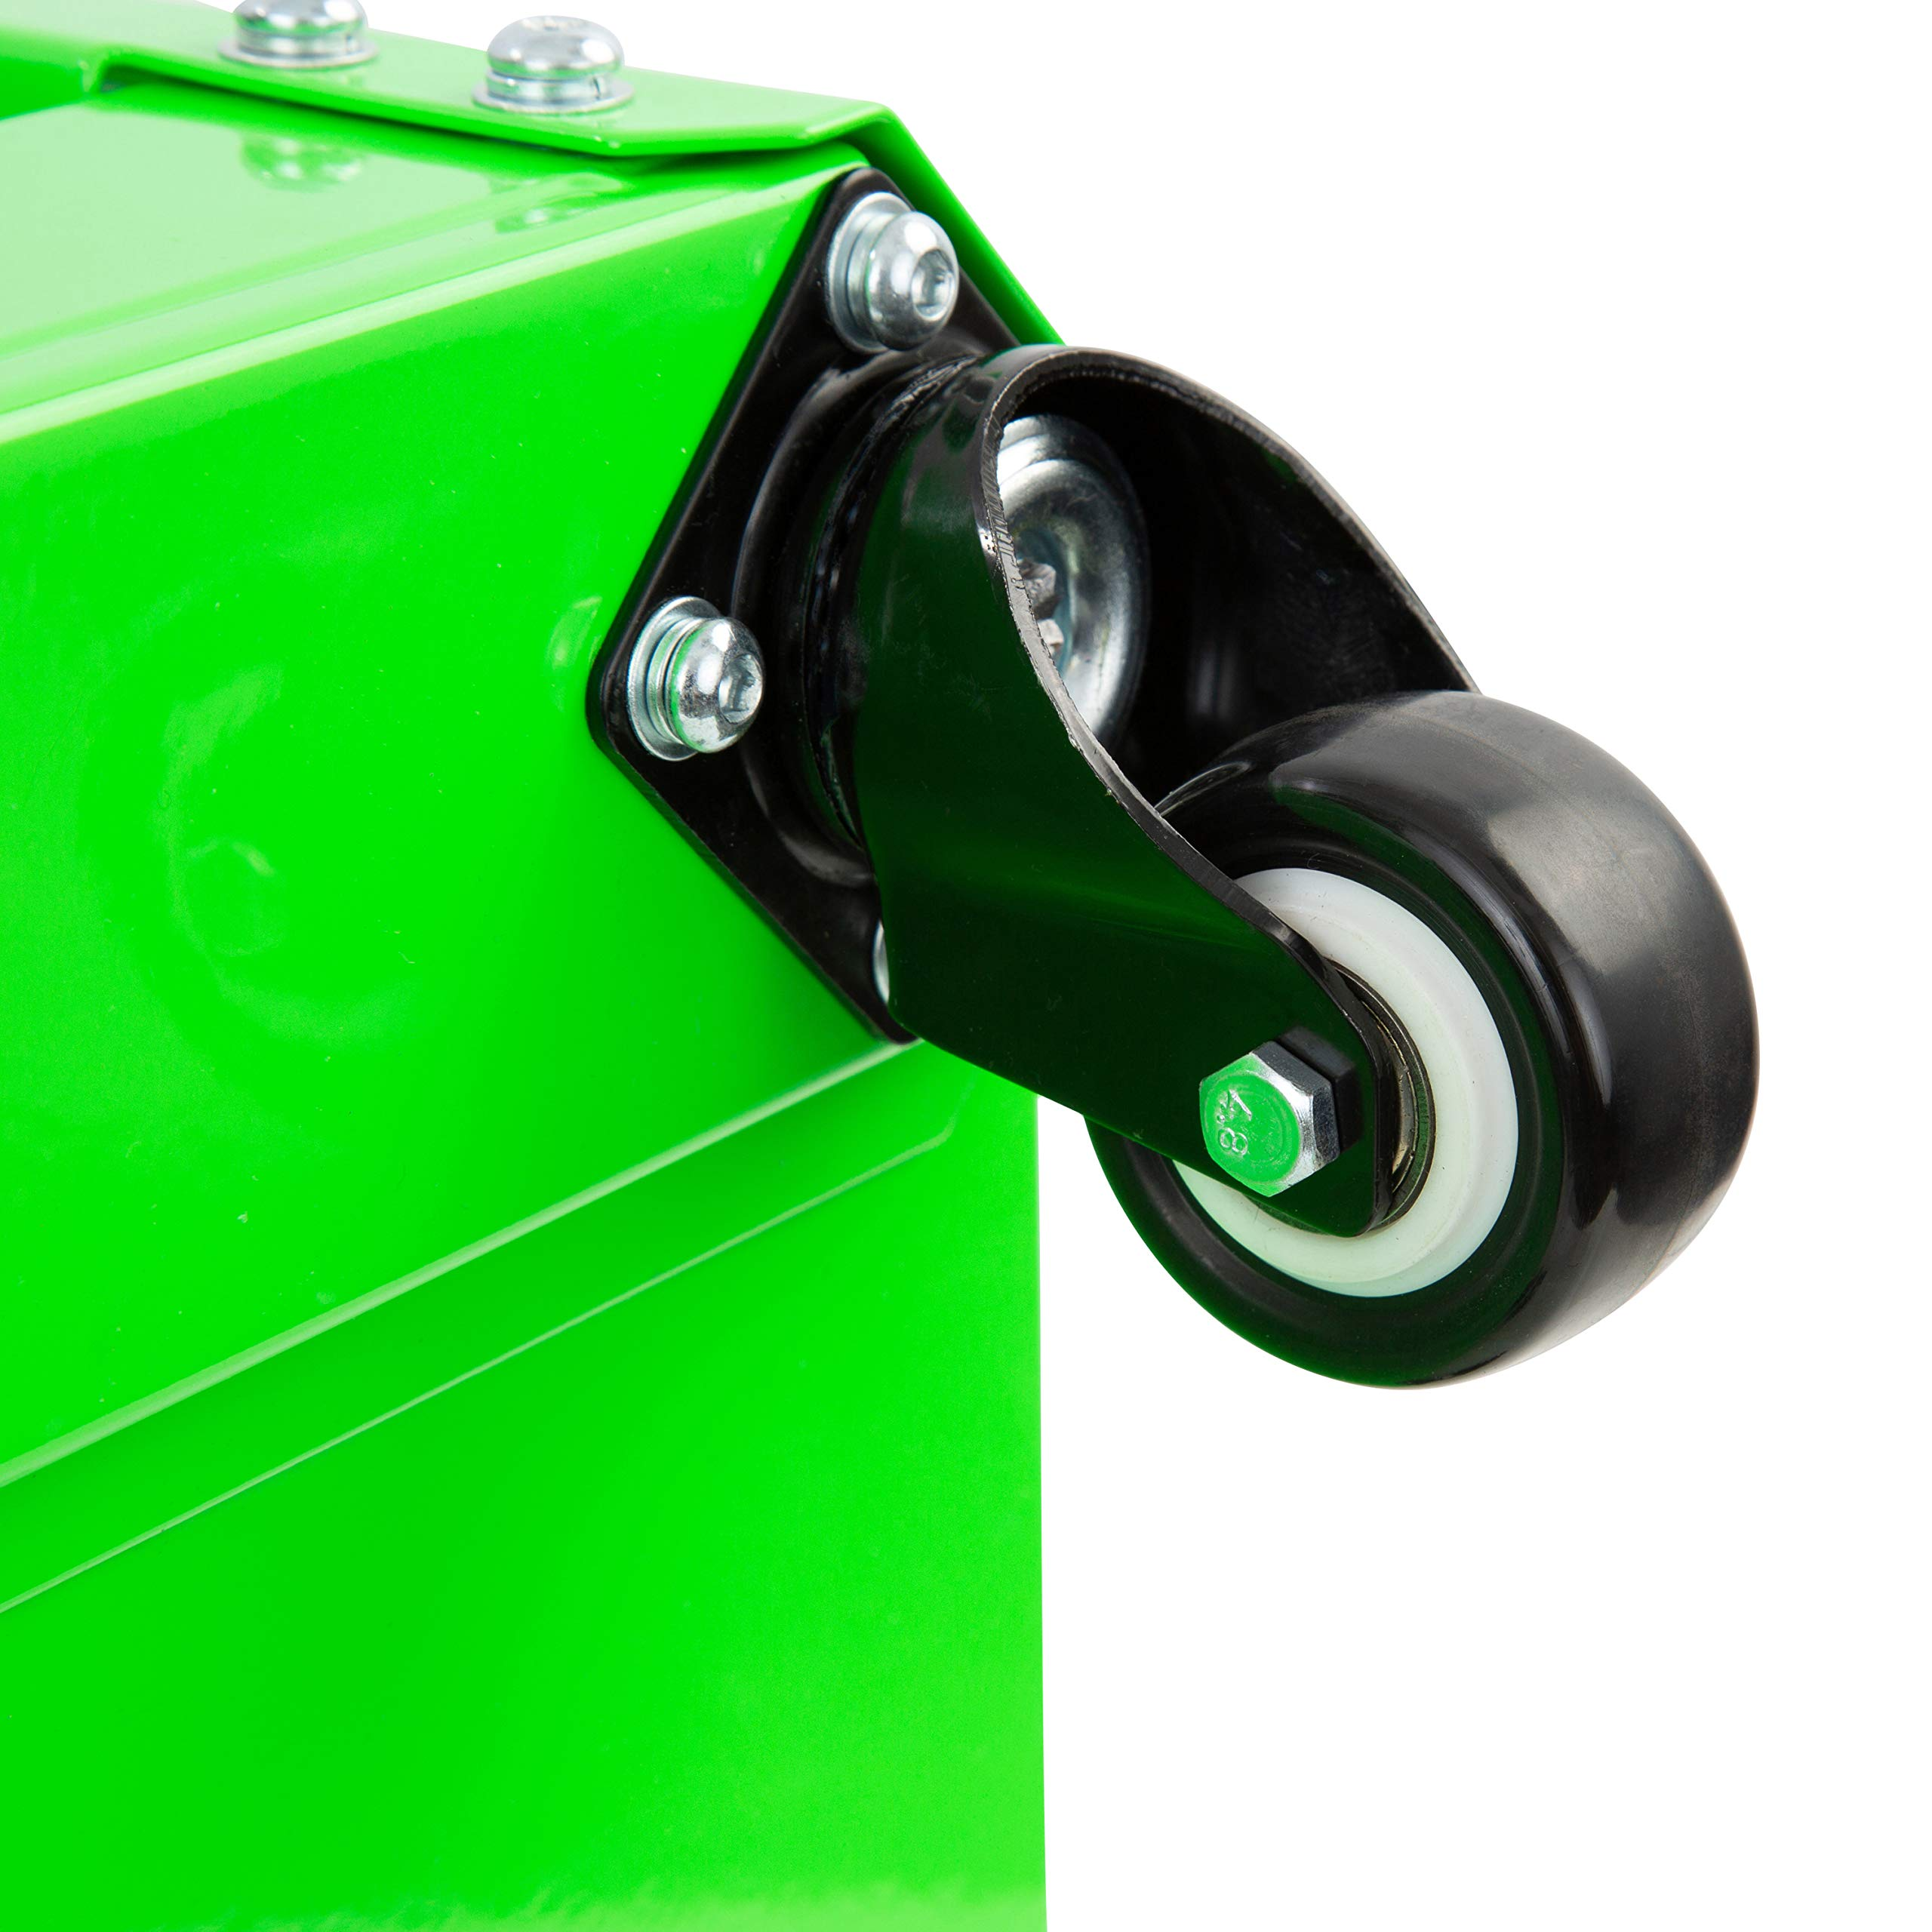 OEMTOOL 24993 Green Rolling Workshop Creeper Seat with 2 Tool Storage Drawers Under Seat Storage Can Holders by OEMTOOLS (Image #6)